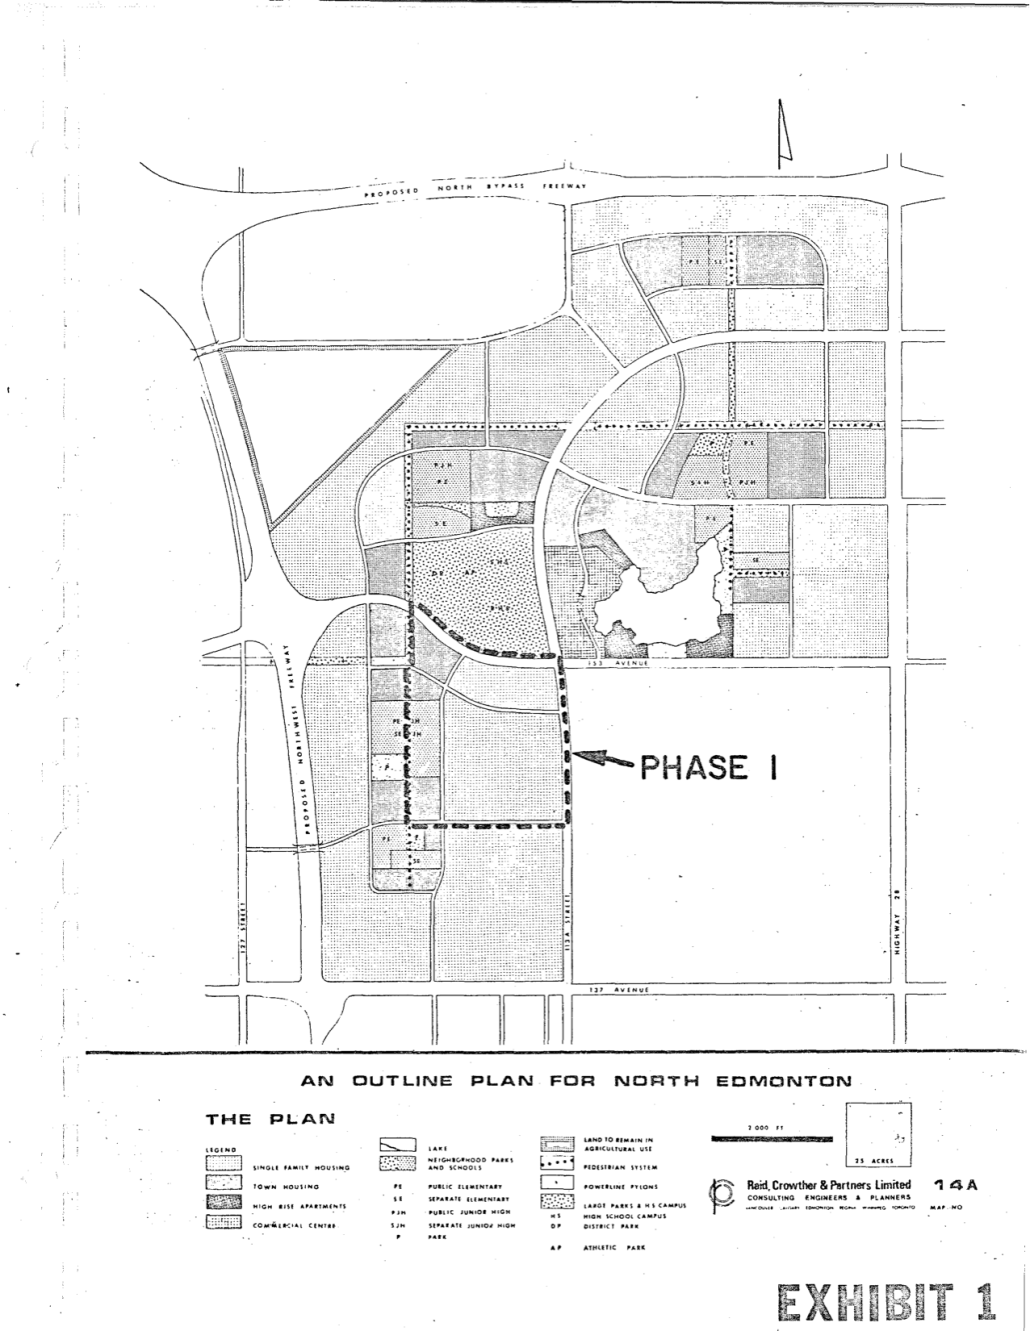 This plan shows the first phase of development as outlined in the 1972 Castle Downs Detailed Subdivision Plan. Image courtesy of the City of Edmonton Archives, do not reproduce.